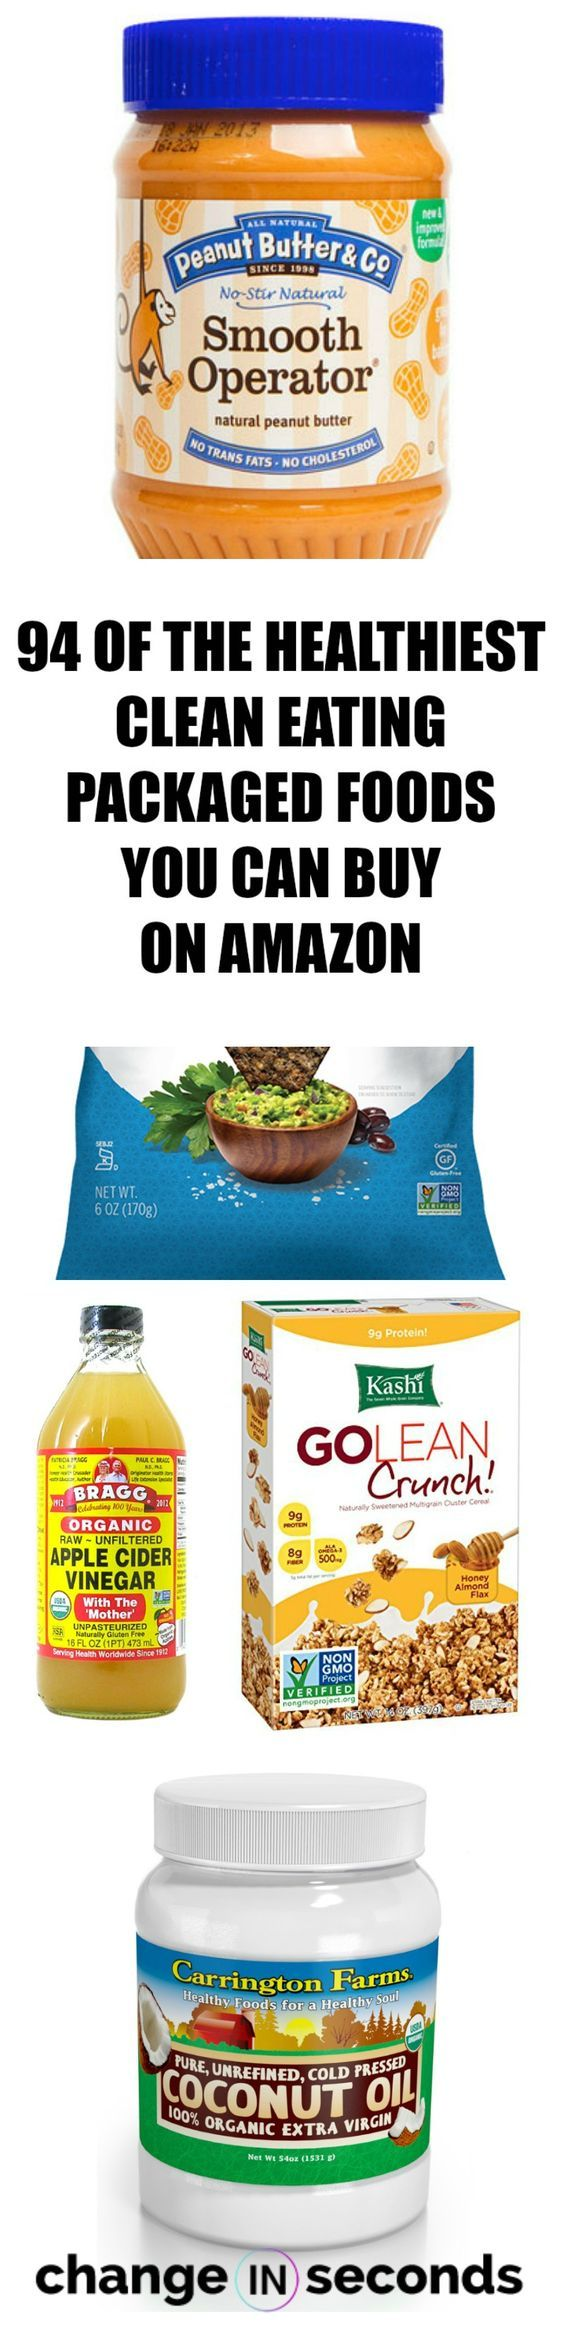 94 Of The Healthiest Clean Eating Packaged Foods You Can Buy On Amazon